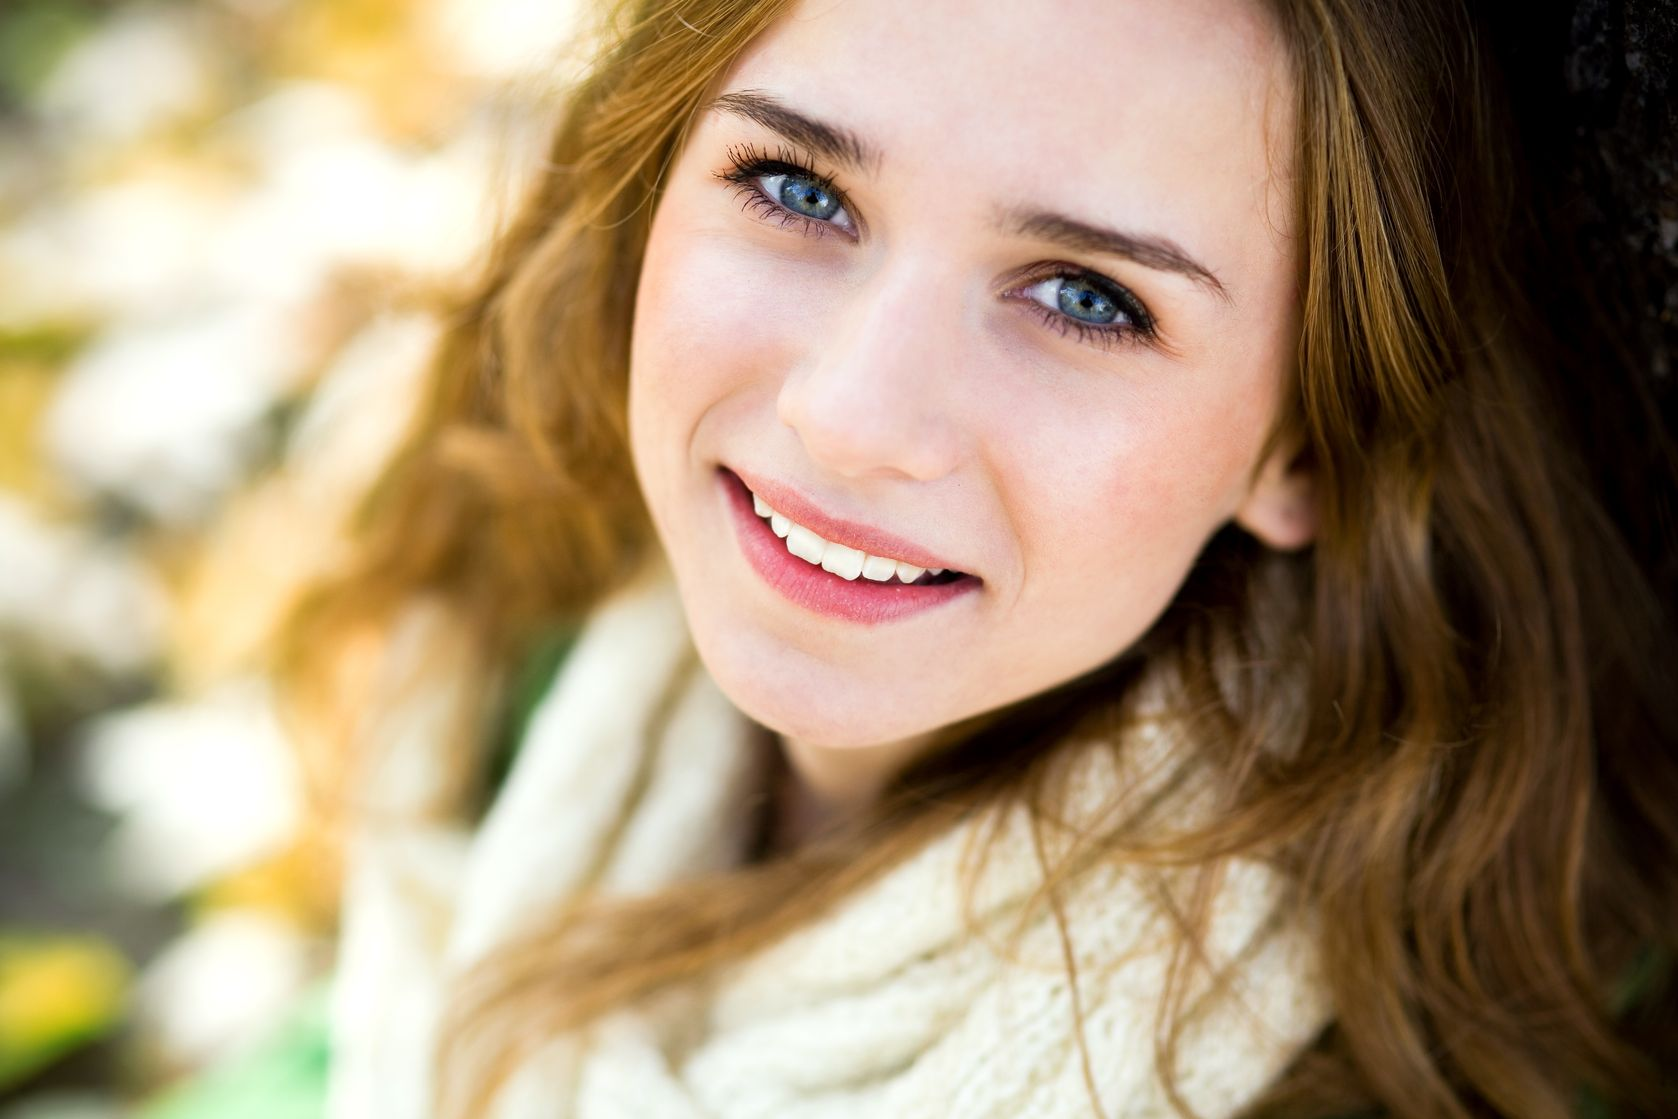 Can Teenagers Get Revision Rhinoplasty?